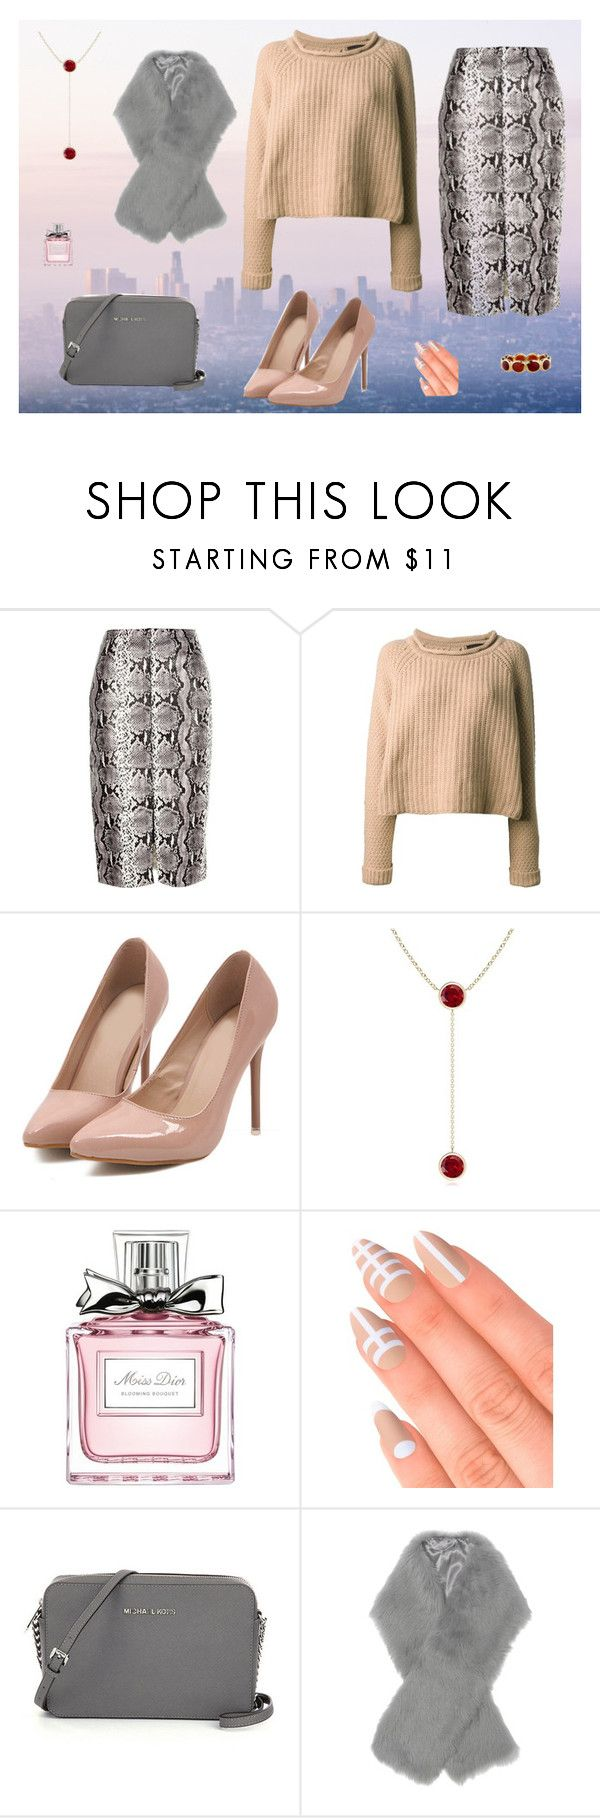 """""""City camouflage"""" by huskey234 ❤ liked on Polyvore featuring River Island, Jo No Fui, Christian Dior, Elegant Touch, Iris & Ink, Ippolita, women's clothing, women's fashion, women and female"""